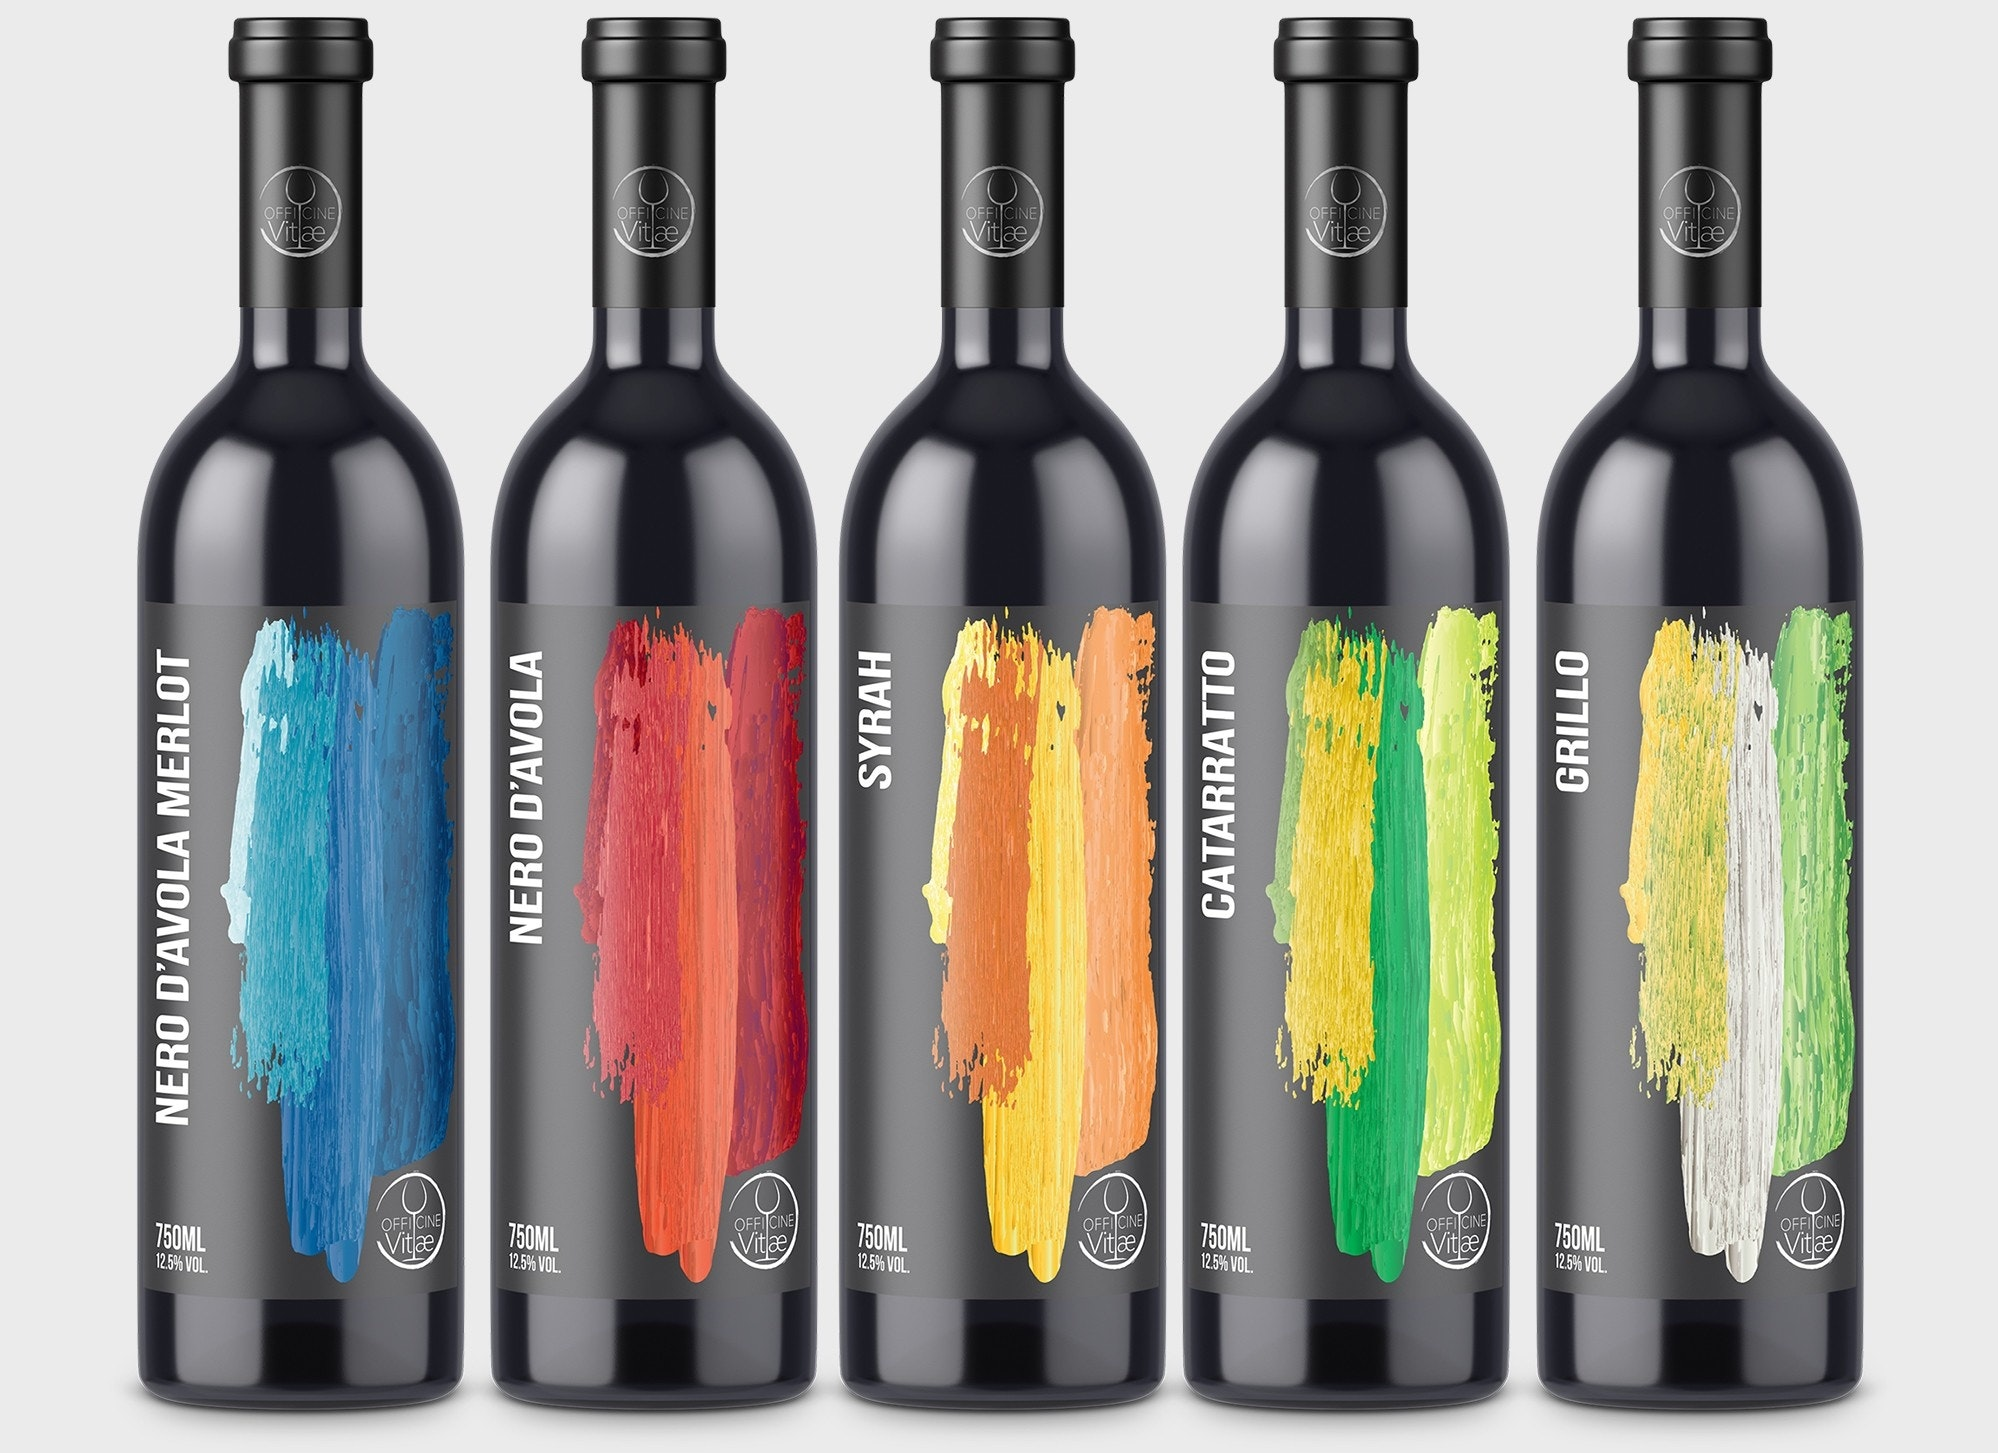 Wine label with different color options